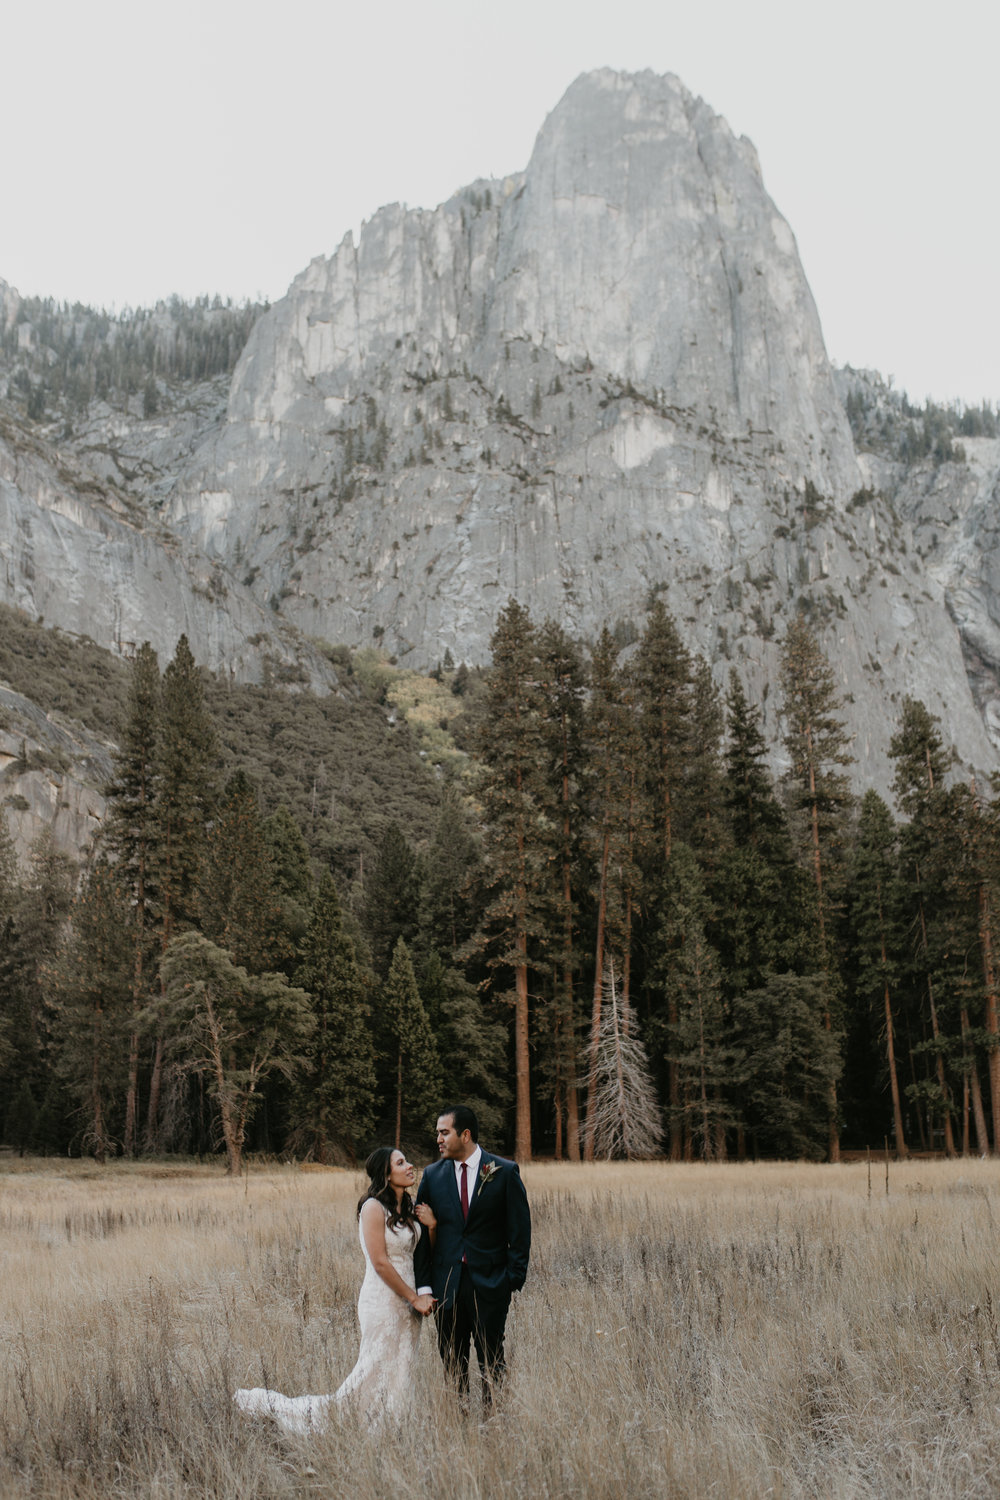 nicole-daacke-photography-intimate-elopement-wedding-yosemite-national-park-california-taft-point-sunset-photos-yosemite-valley-tunnel-view-first-look-sunrise-golden-granite-hiking-adventure-wedding-adventurous-elopement-photographer-17.jpg